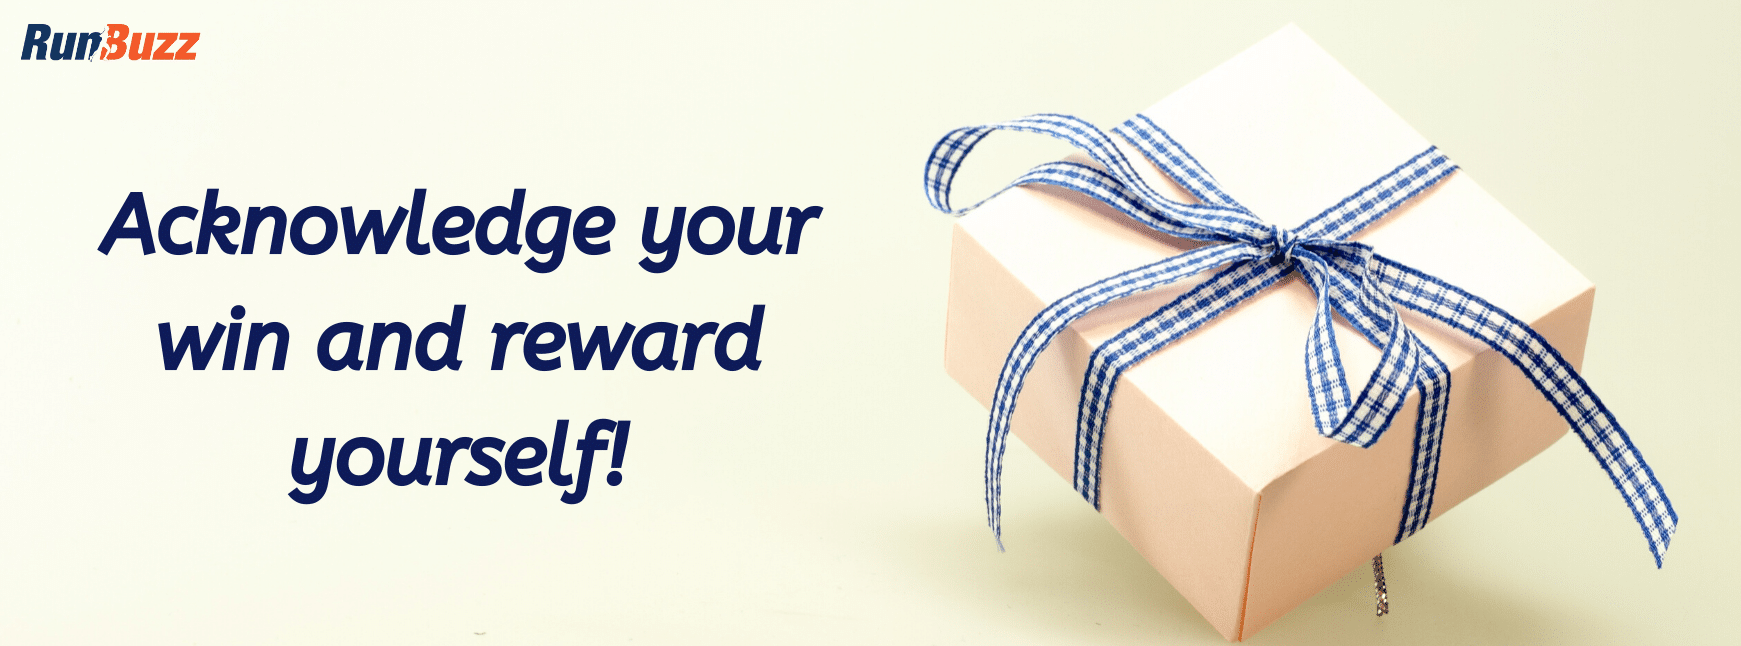 Acknowledge-your-win-and-reward-yourself